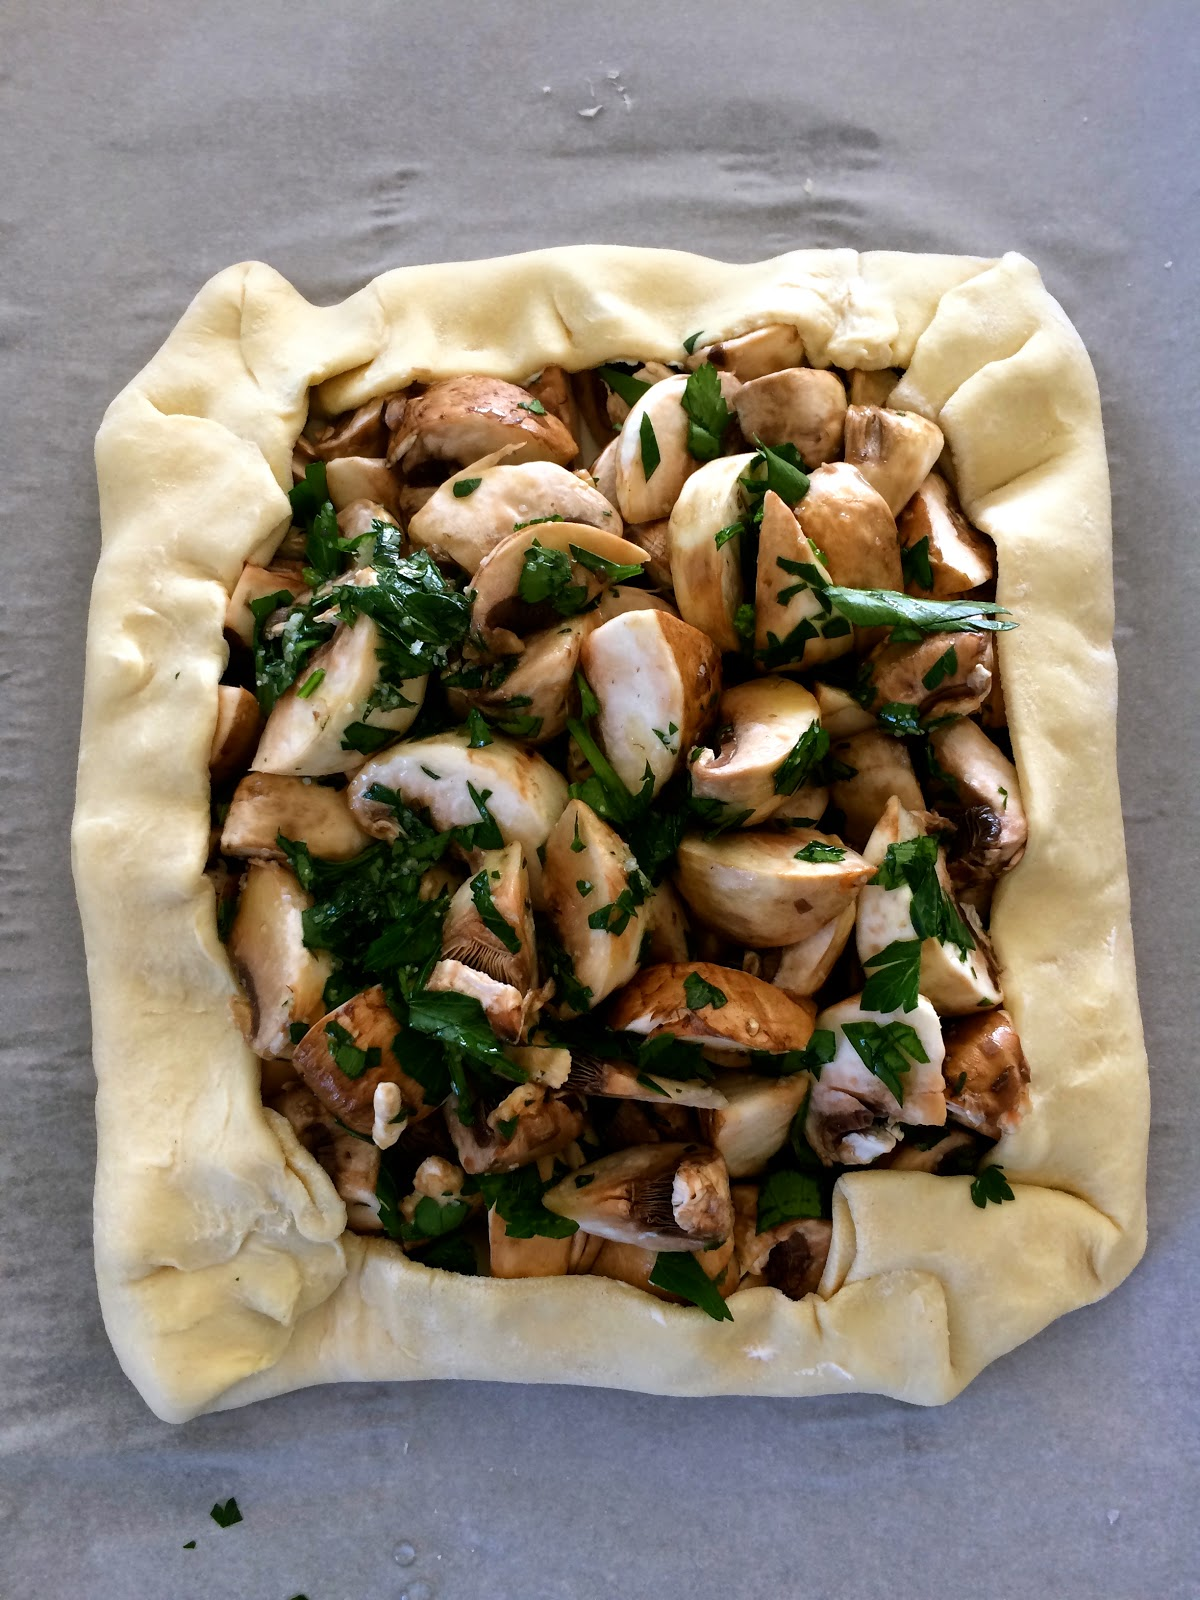 Mushroom and Cream Cheese Puff Pastry from Food Therapy